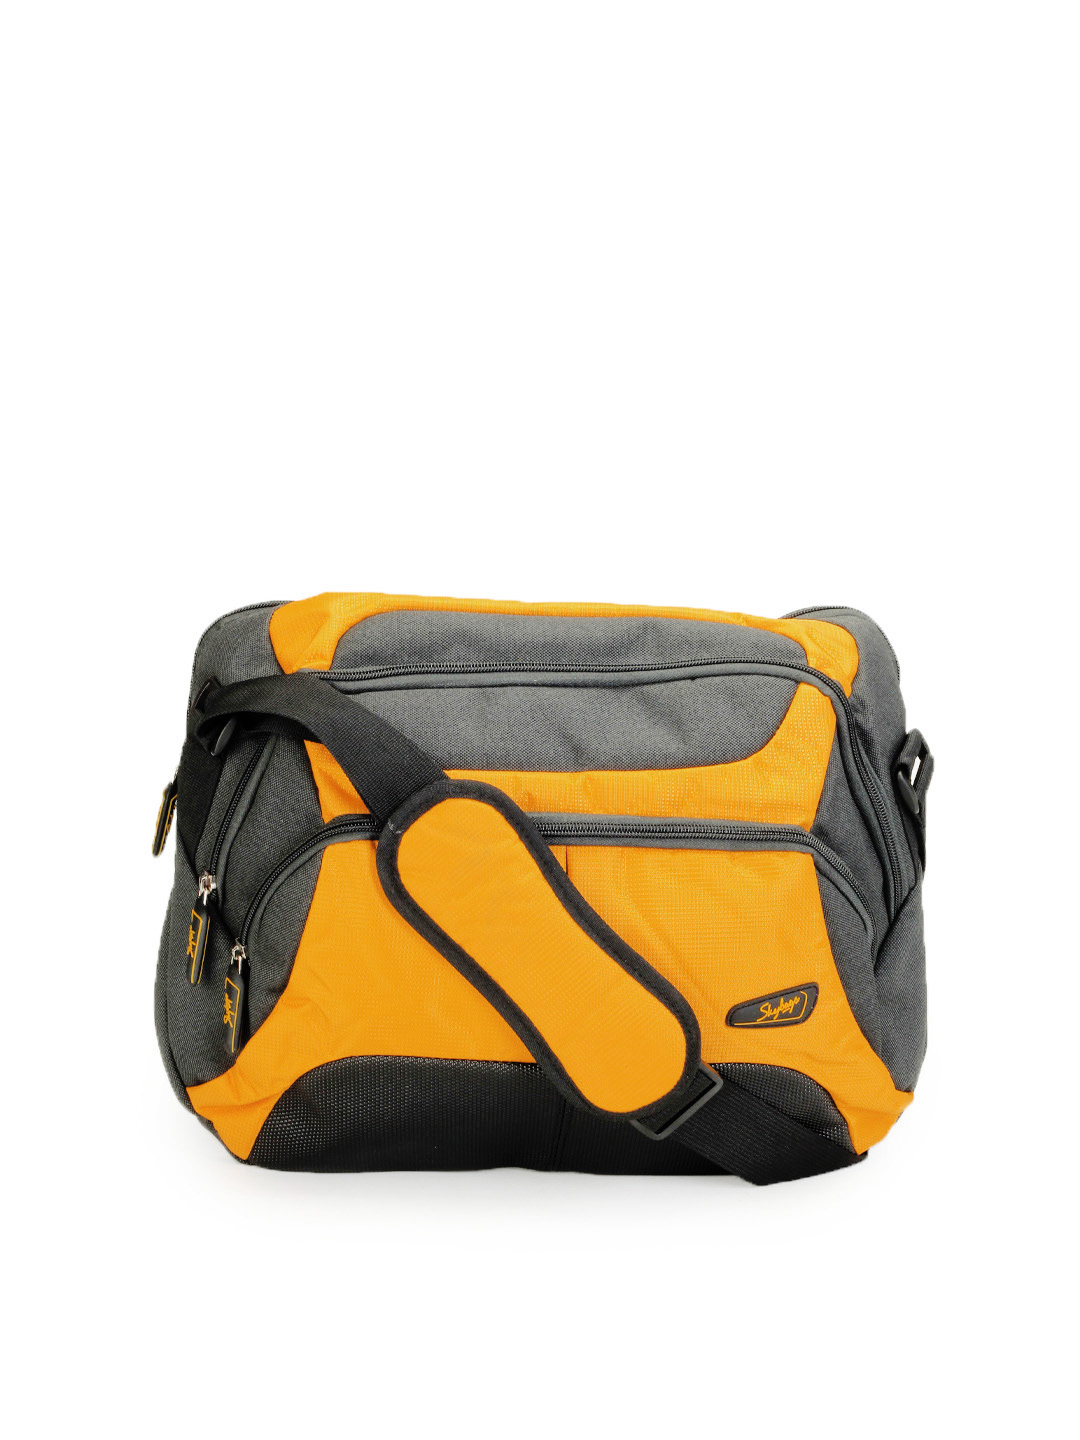 Skybags Unisex Yellow & Charcoal Bag